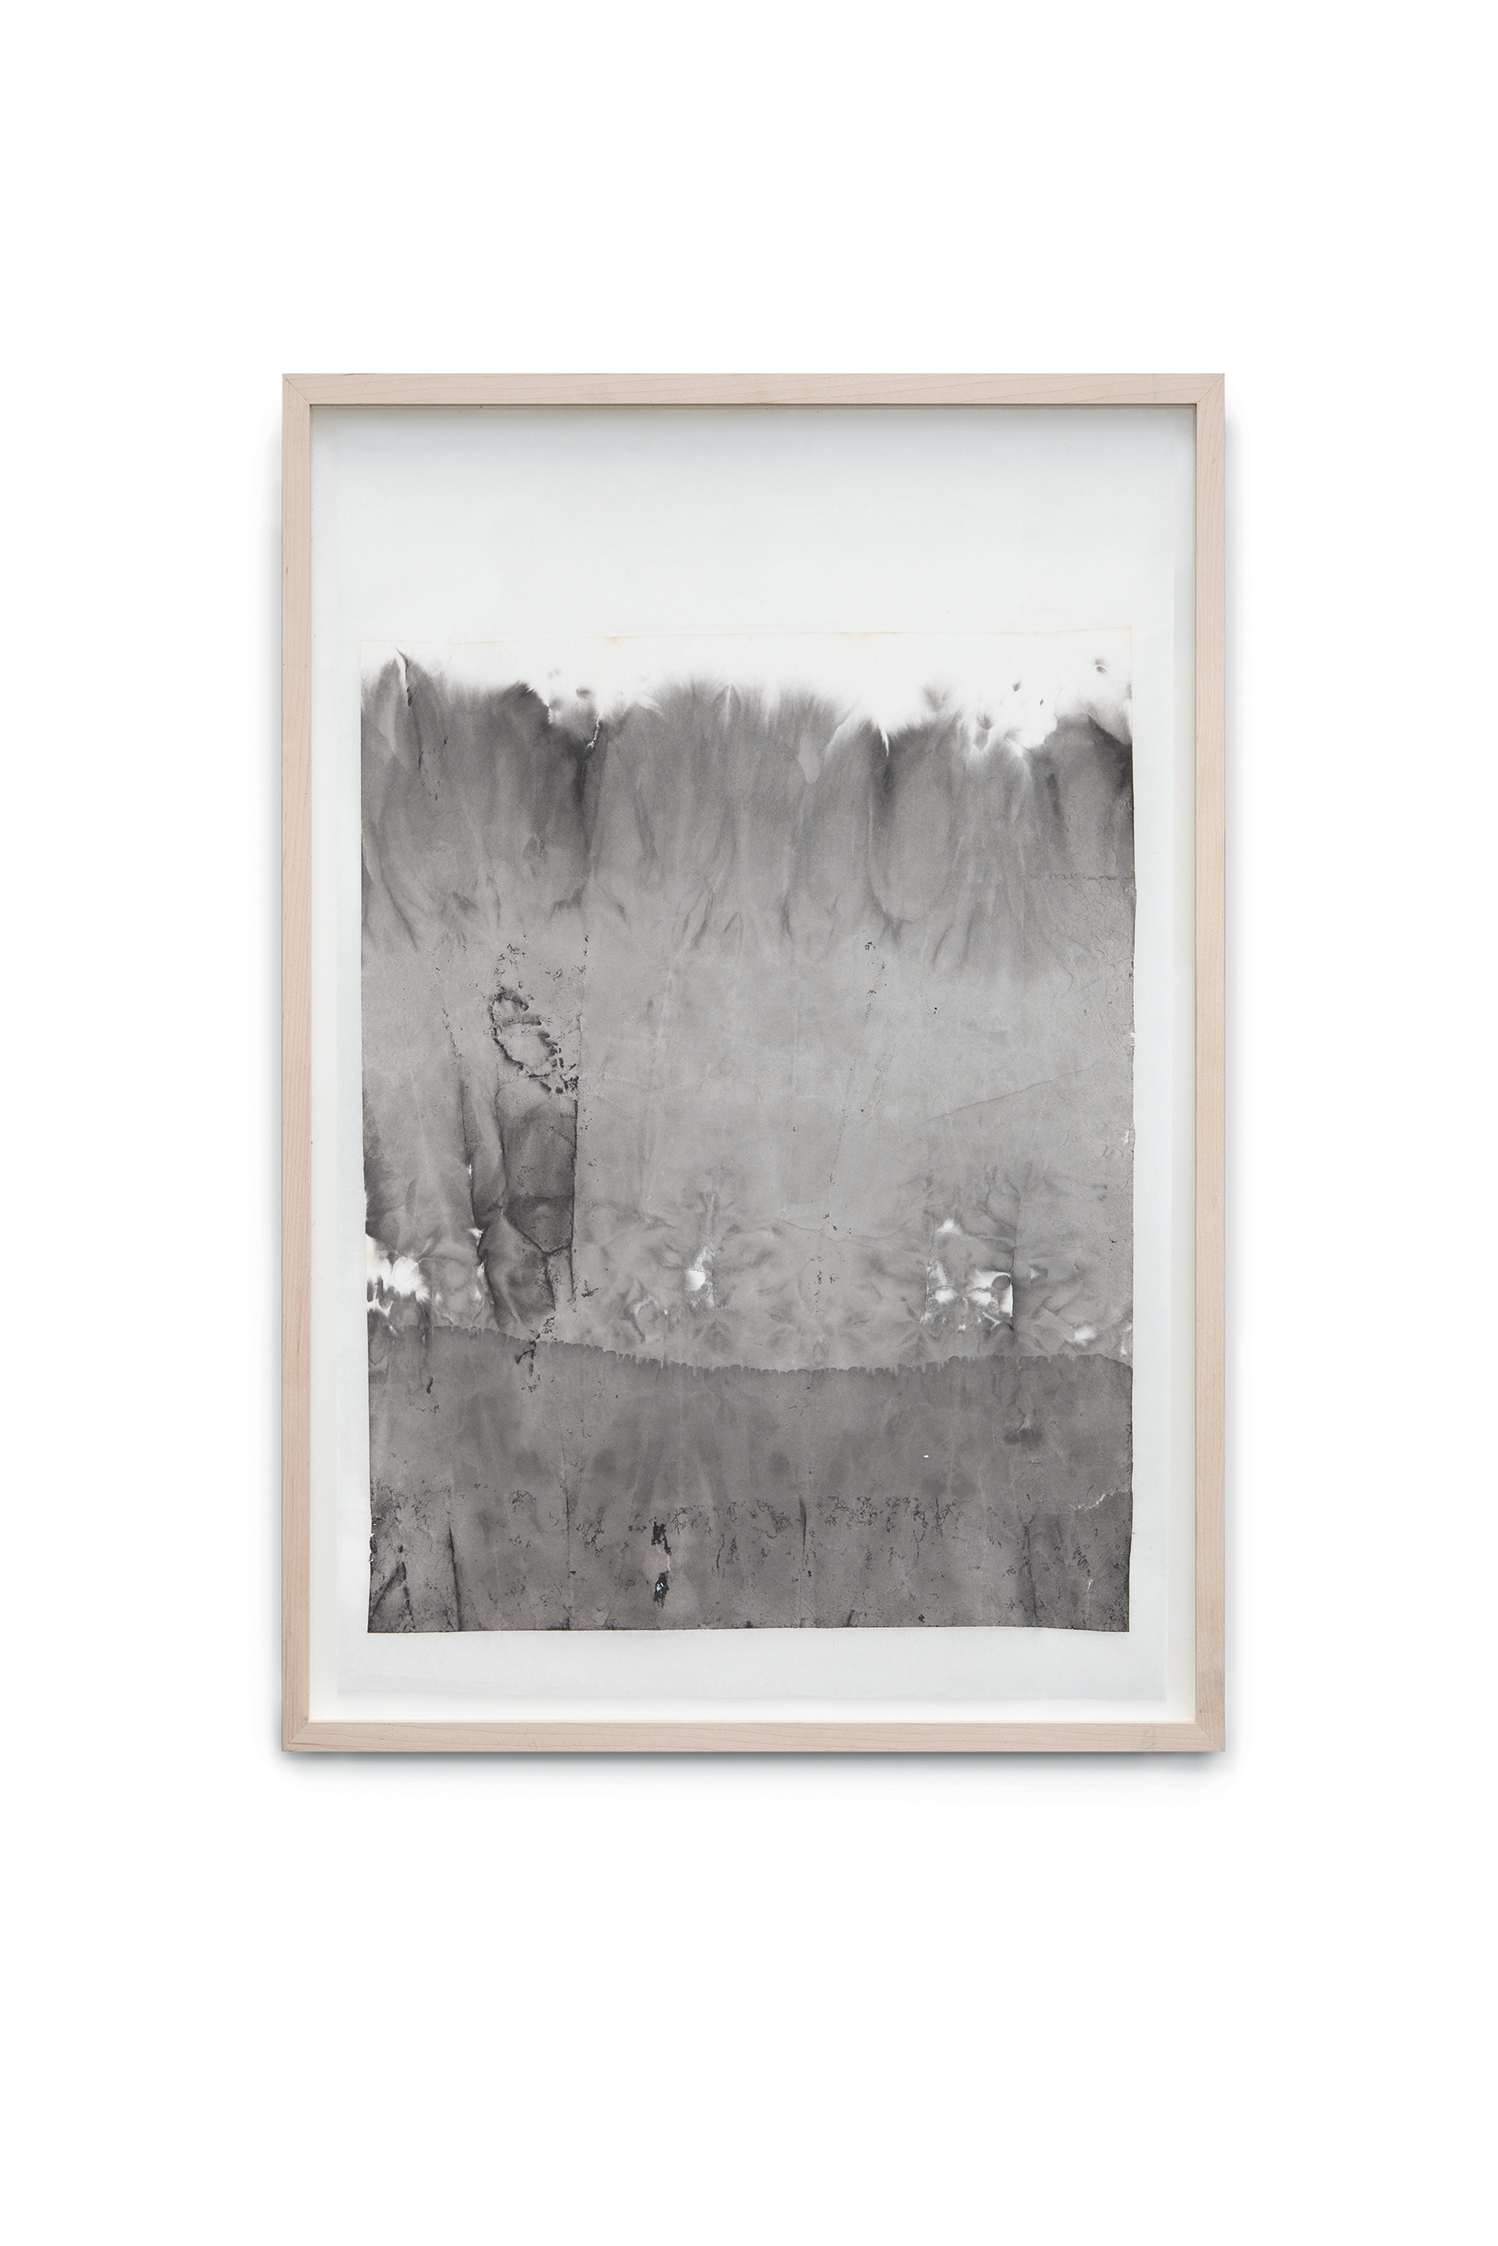 Immersion I, 2014, ink on rice paper coated on japan paper, 60x46 cm